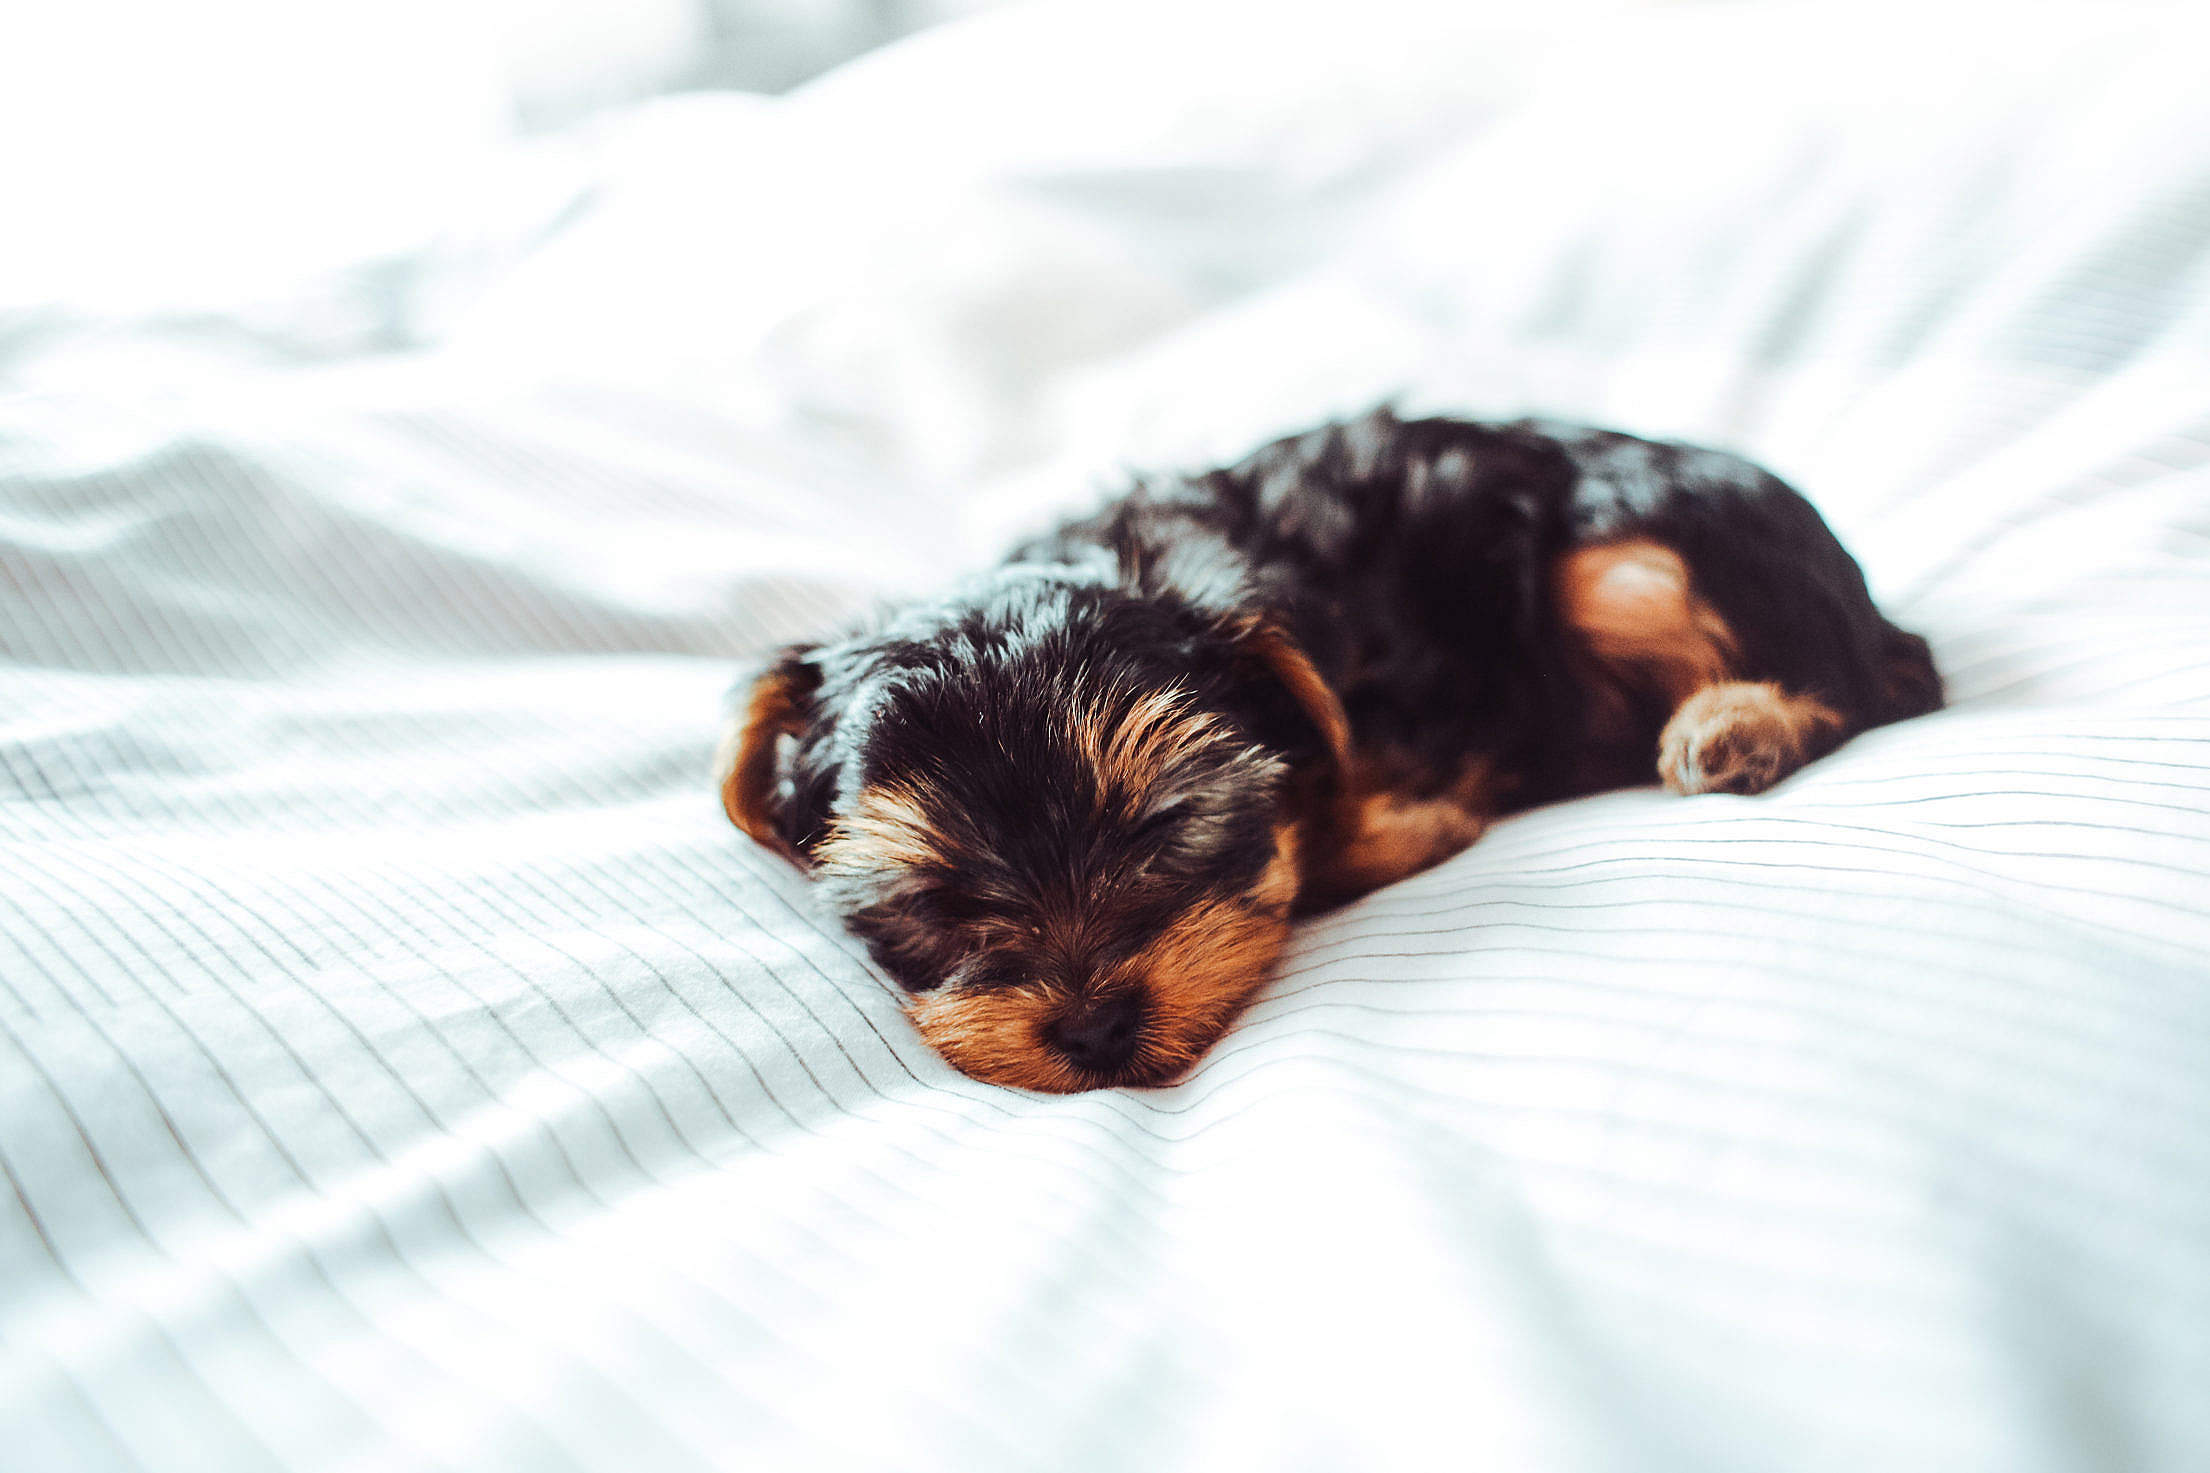 Adorable Sleeping Yorkshire Terrier Puppy Free Stock Photo